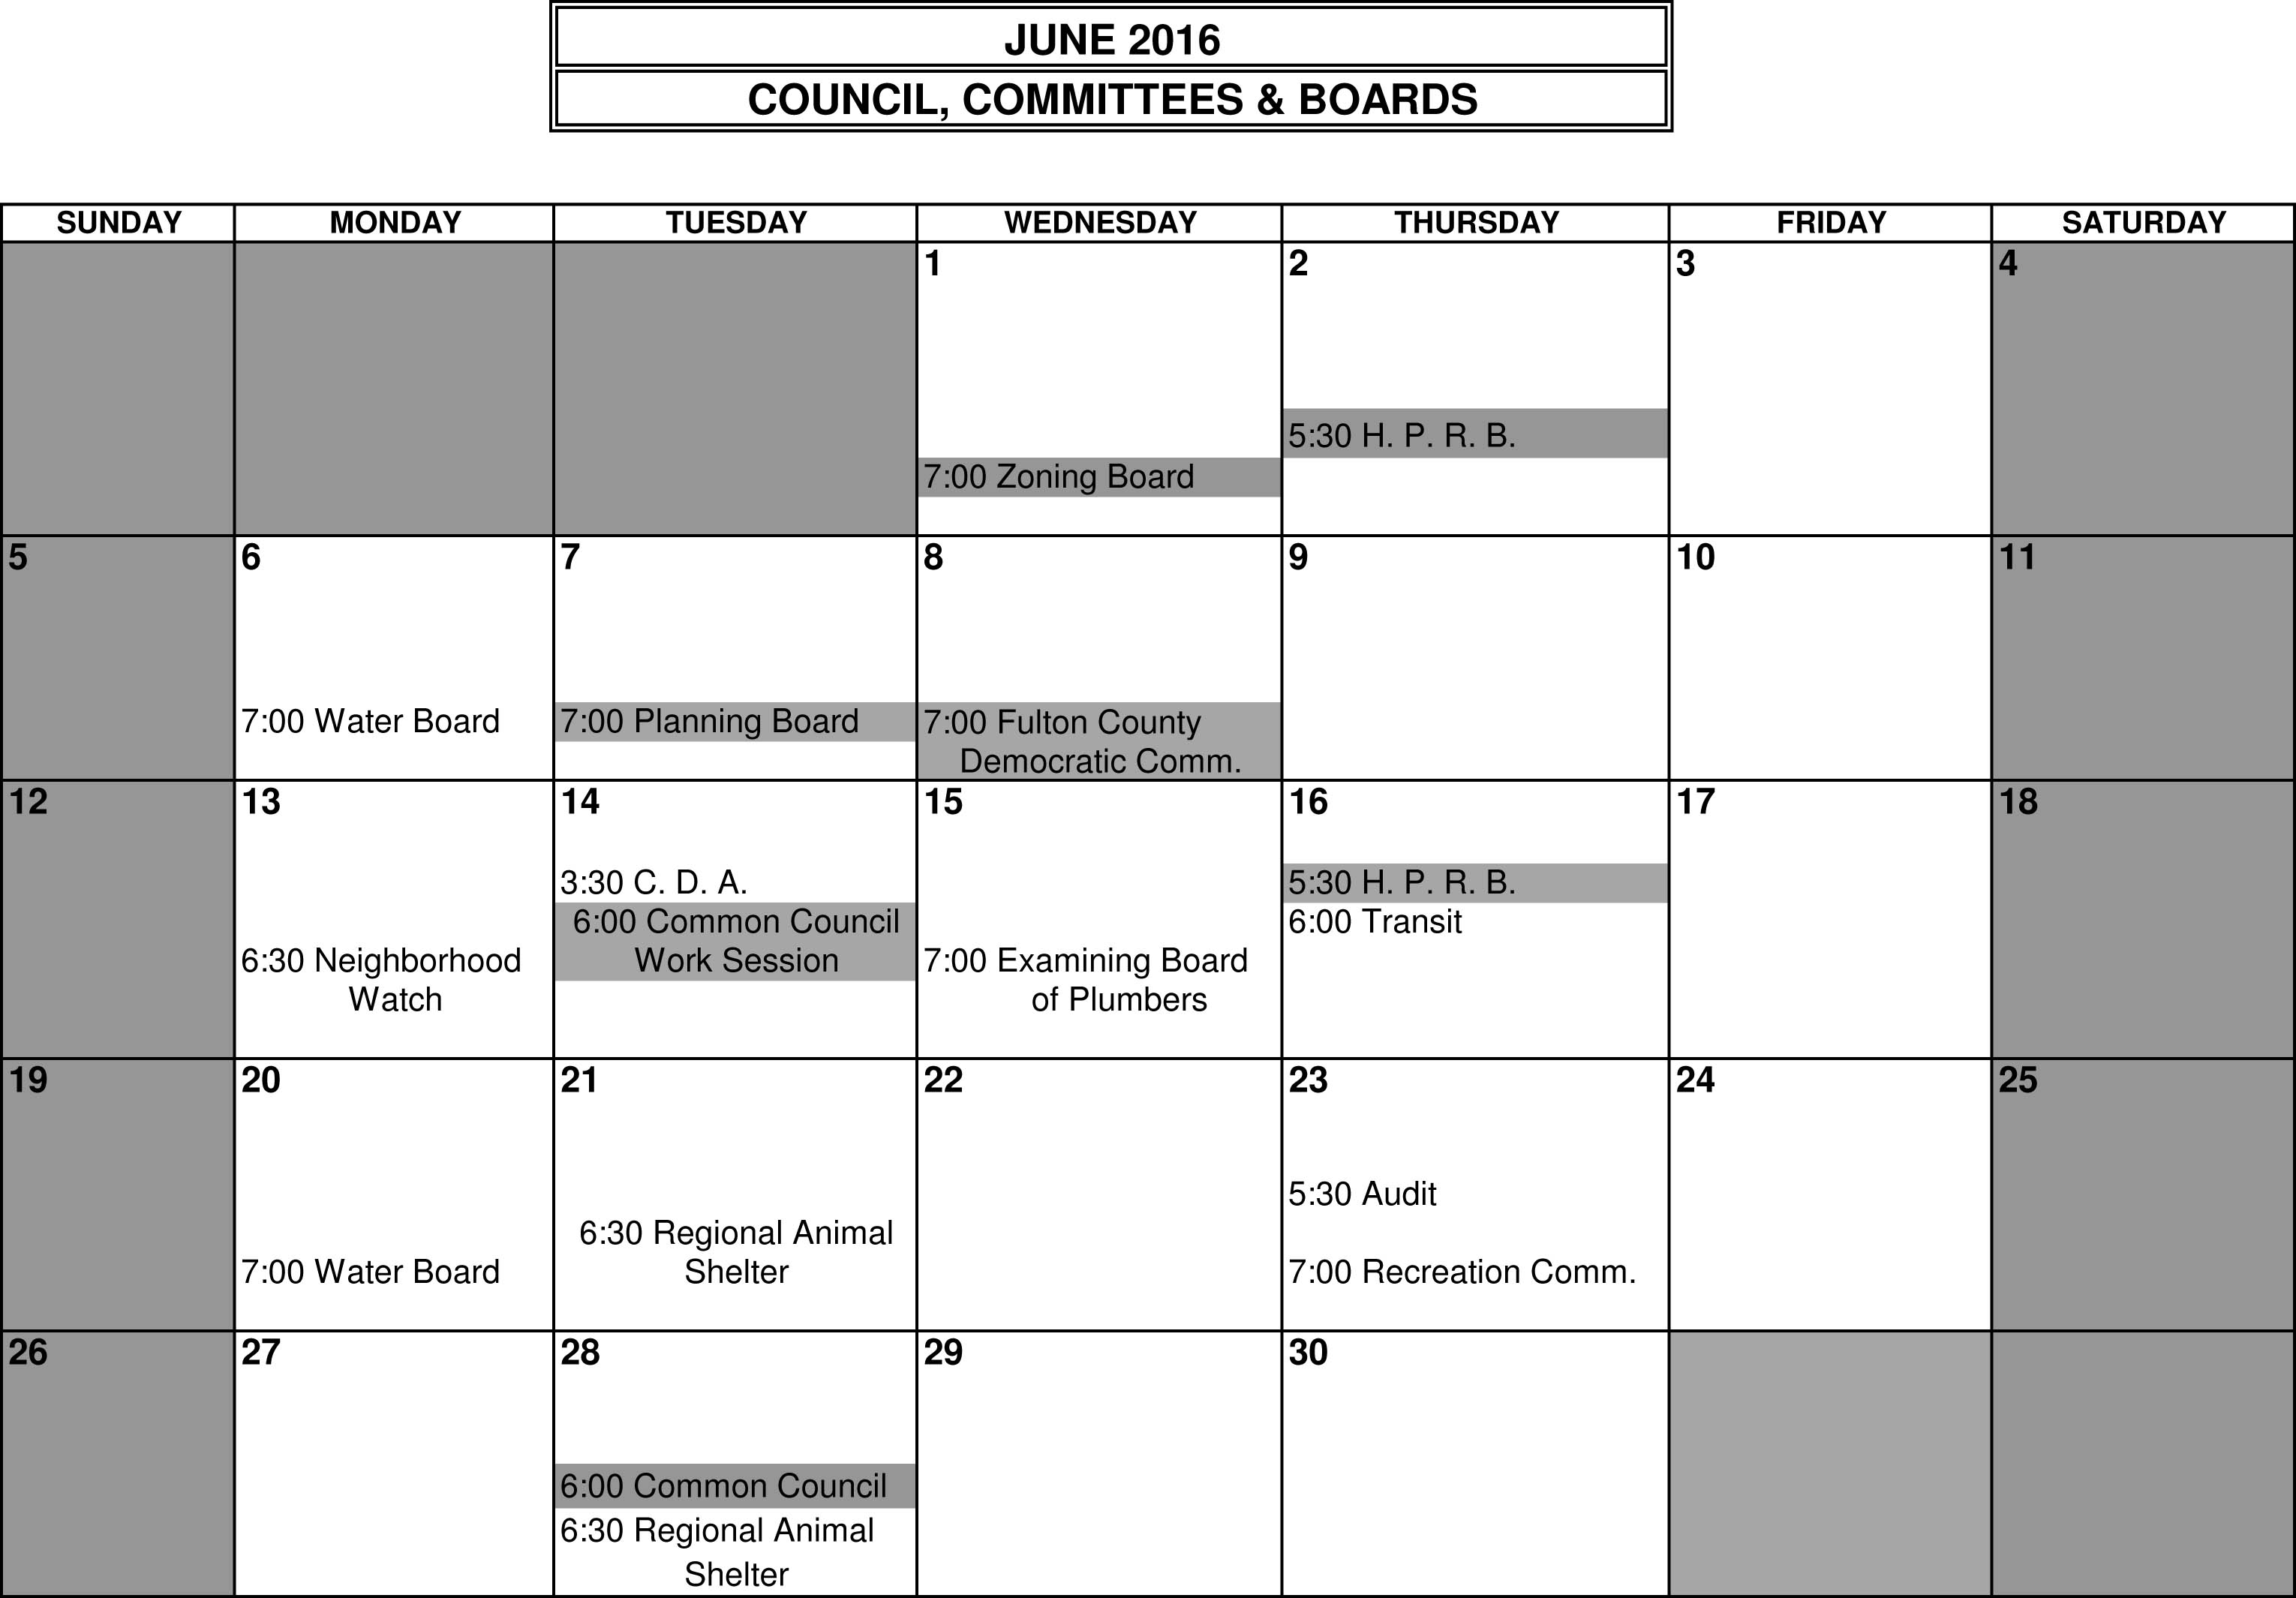 Calendar June 2016 City Of Gloversville